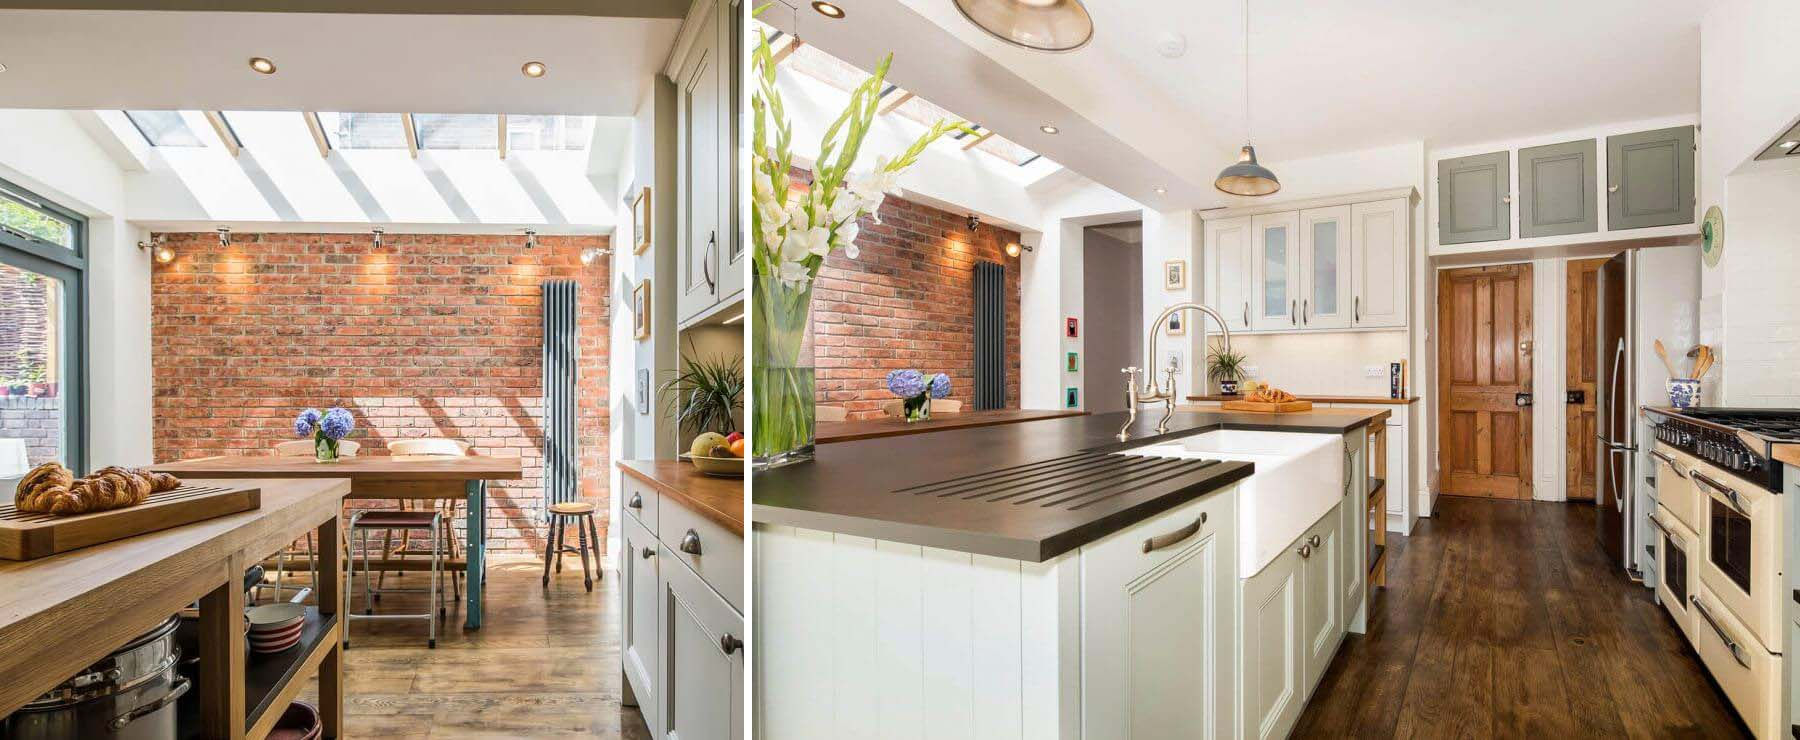 white cabinets with red brick wall black countertops skylights and vaulted ceilings